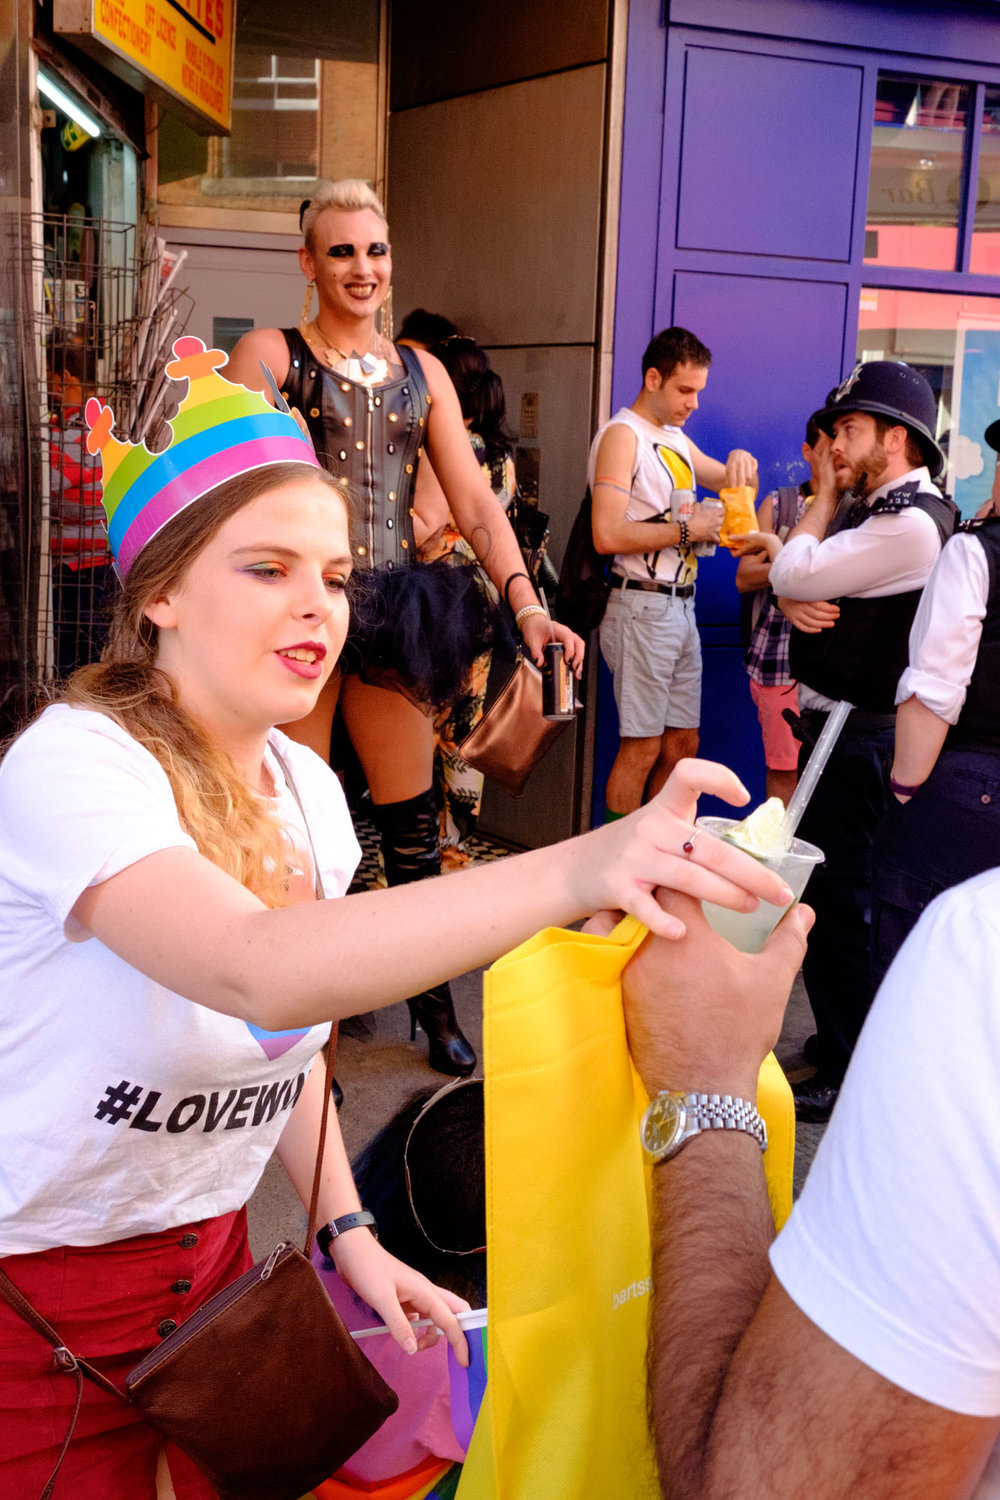 """The diversity of the crowd was truly admirable. """"Hold my drink!"""" to a stranger as she snapped a photo of the lady in drag with a policeman."""